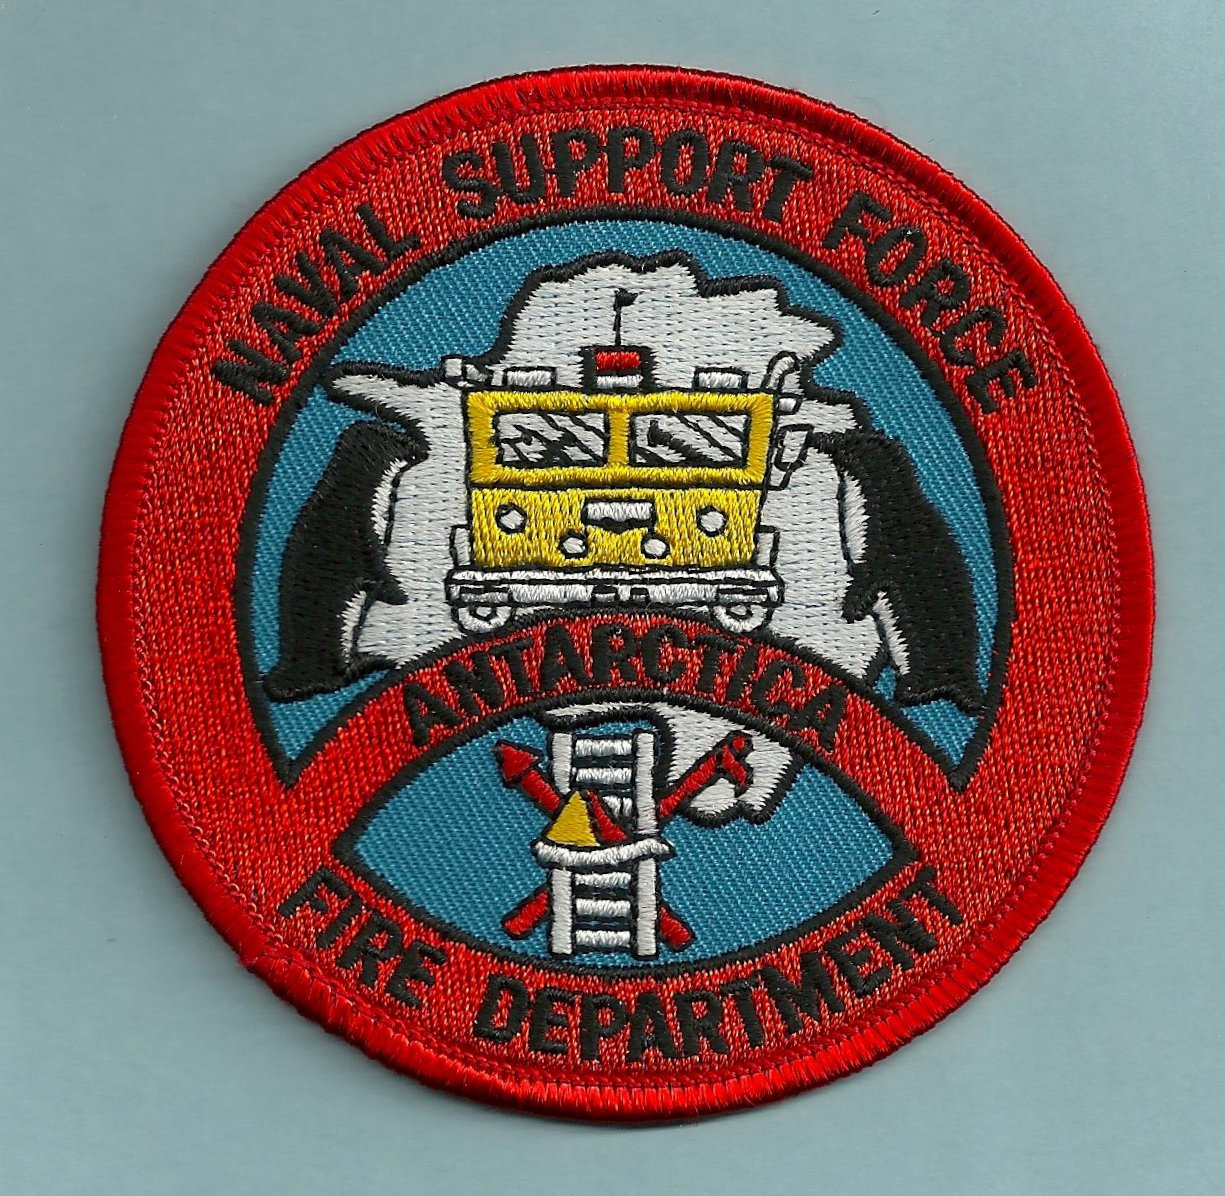 McMurdo Antarctica U.S. Naval Support Force Fire Rescue Patch